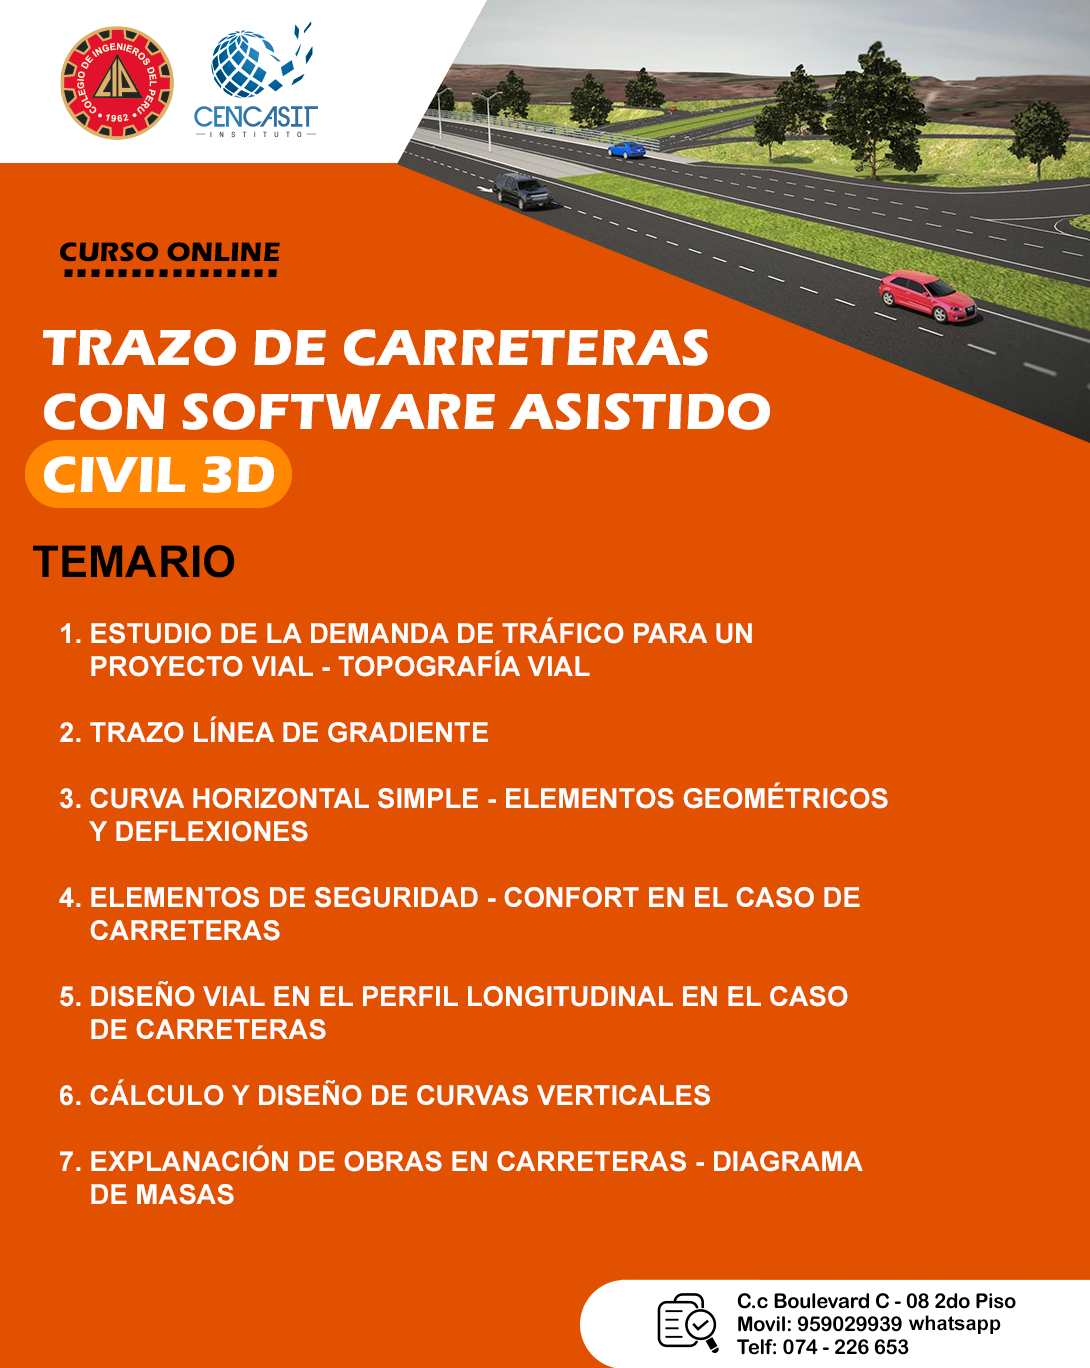 TRAZO DE CARRETERAS CON SOFTWARE ASISTIDO CIVIL 3D